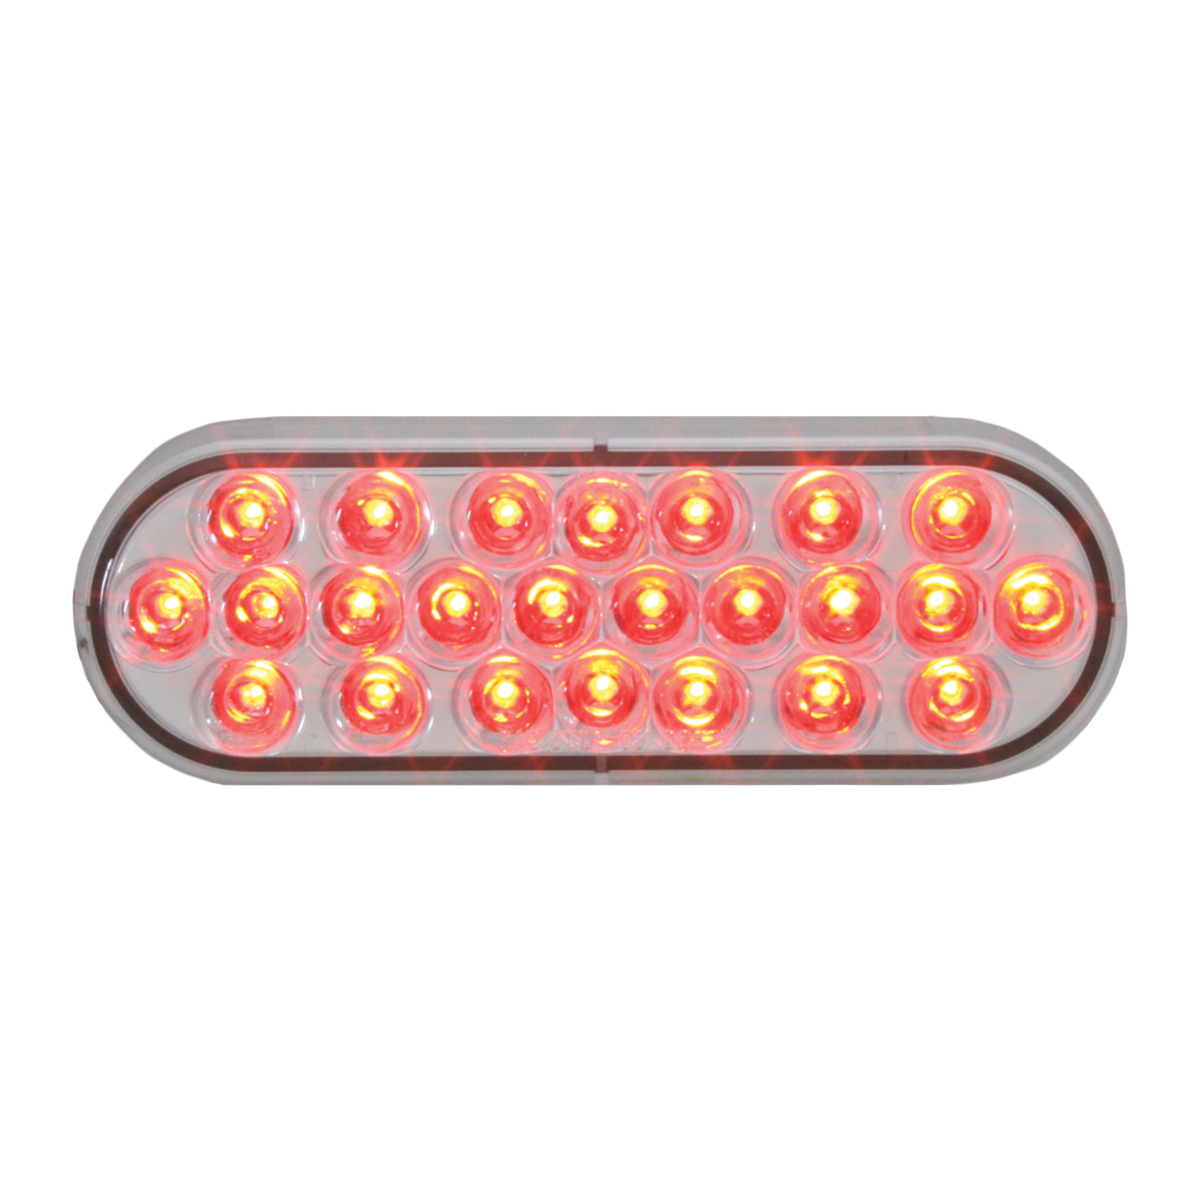 Oval Synchronous/Alternating Pearl LED Strobe Light in Red/Clear